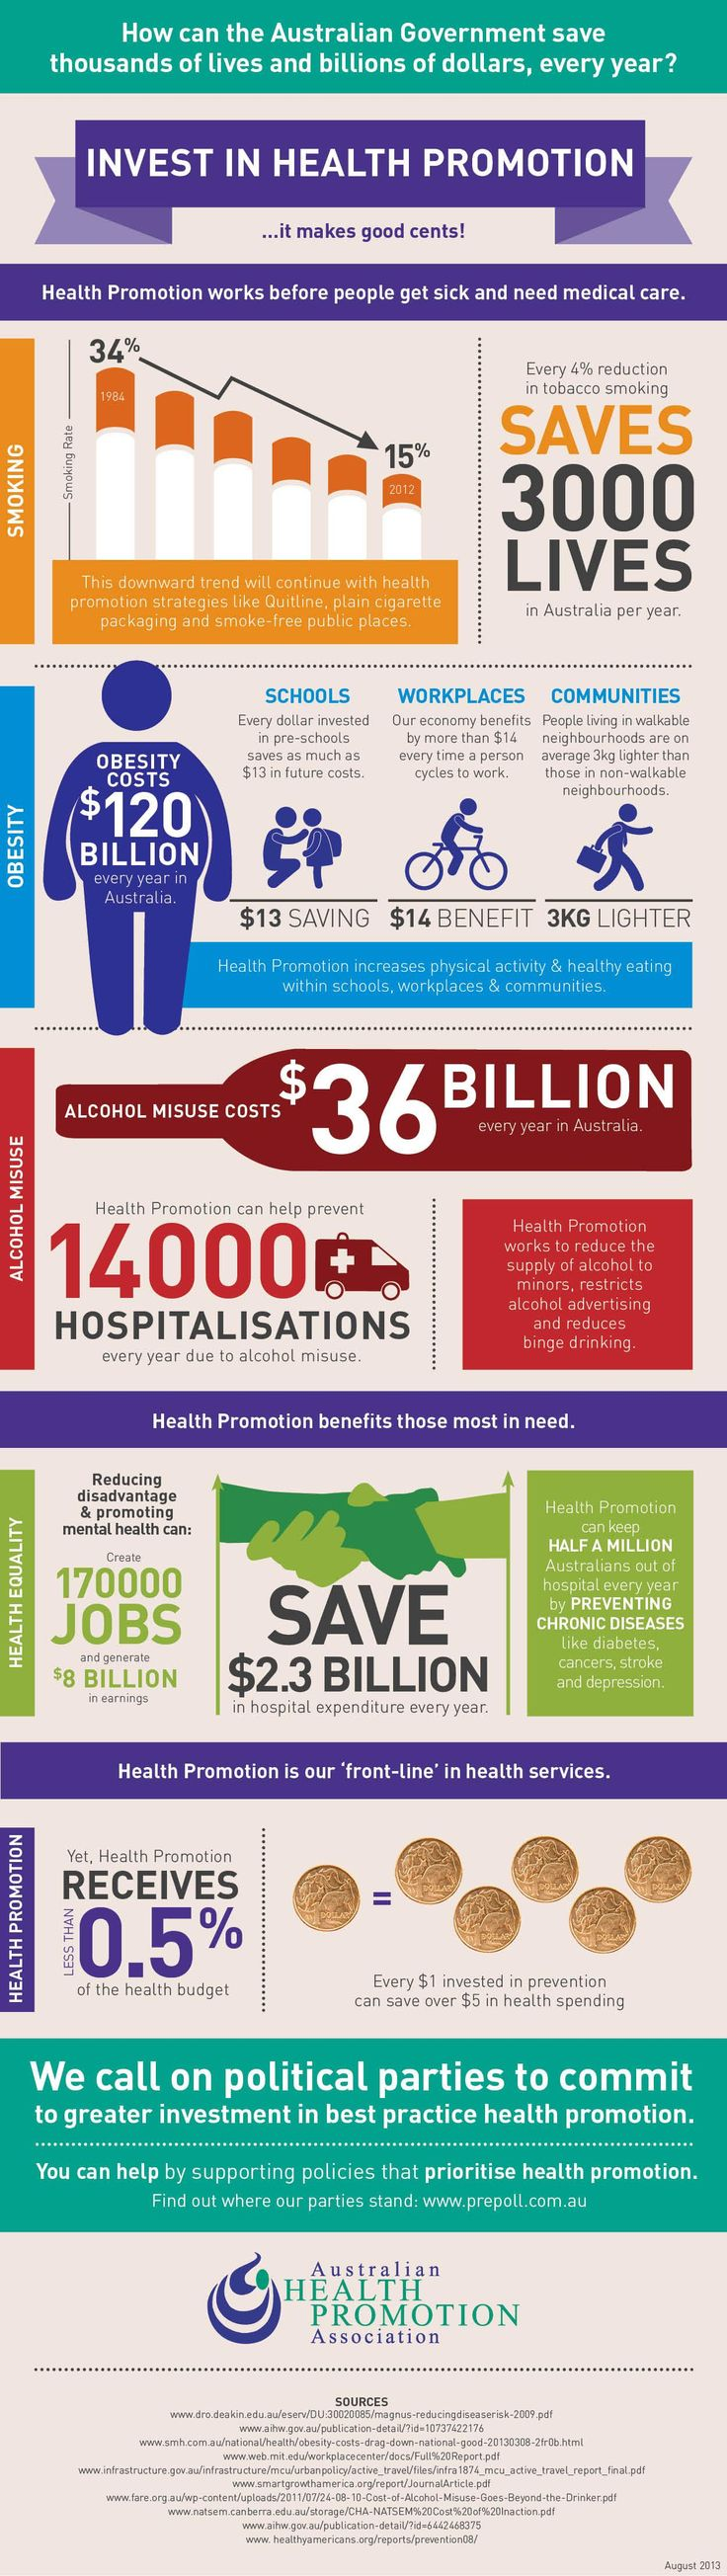 Australian health promotion alliance- The first country to place an emphasis on promotion rather than treatment.